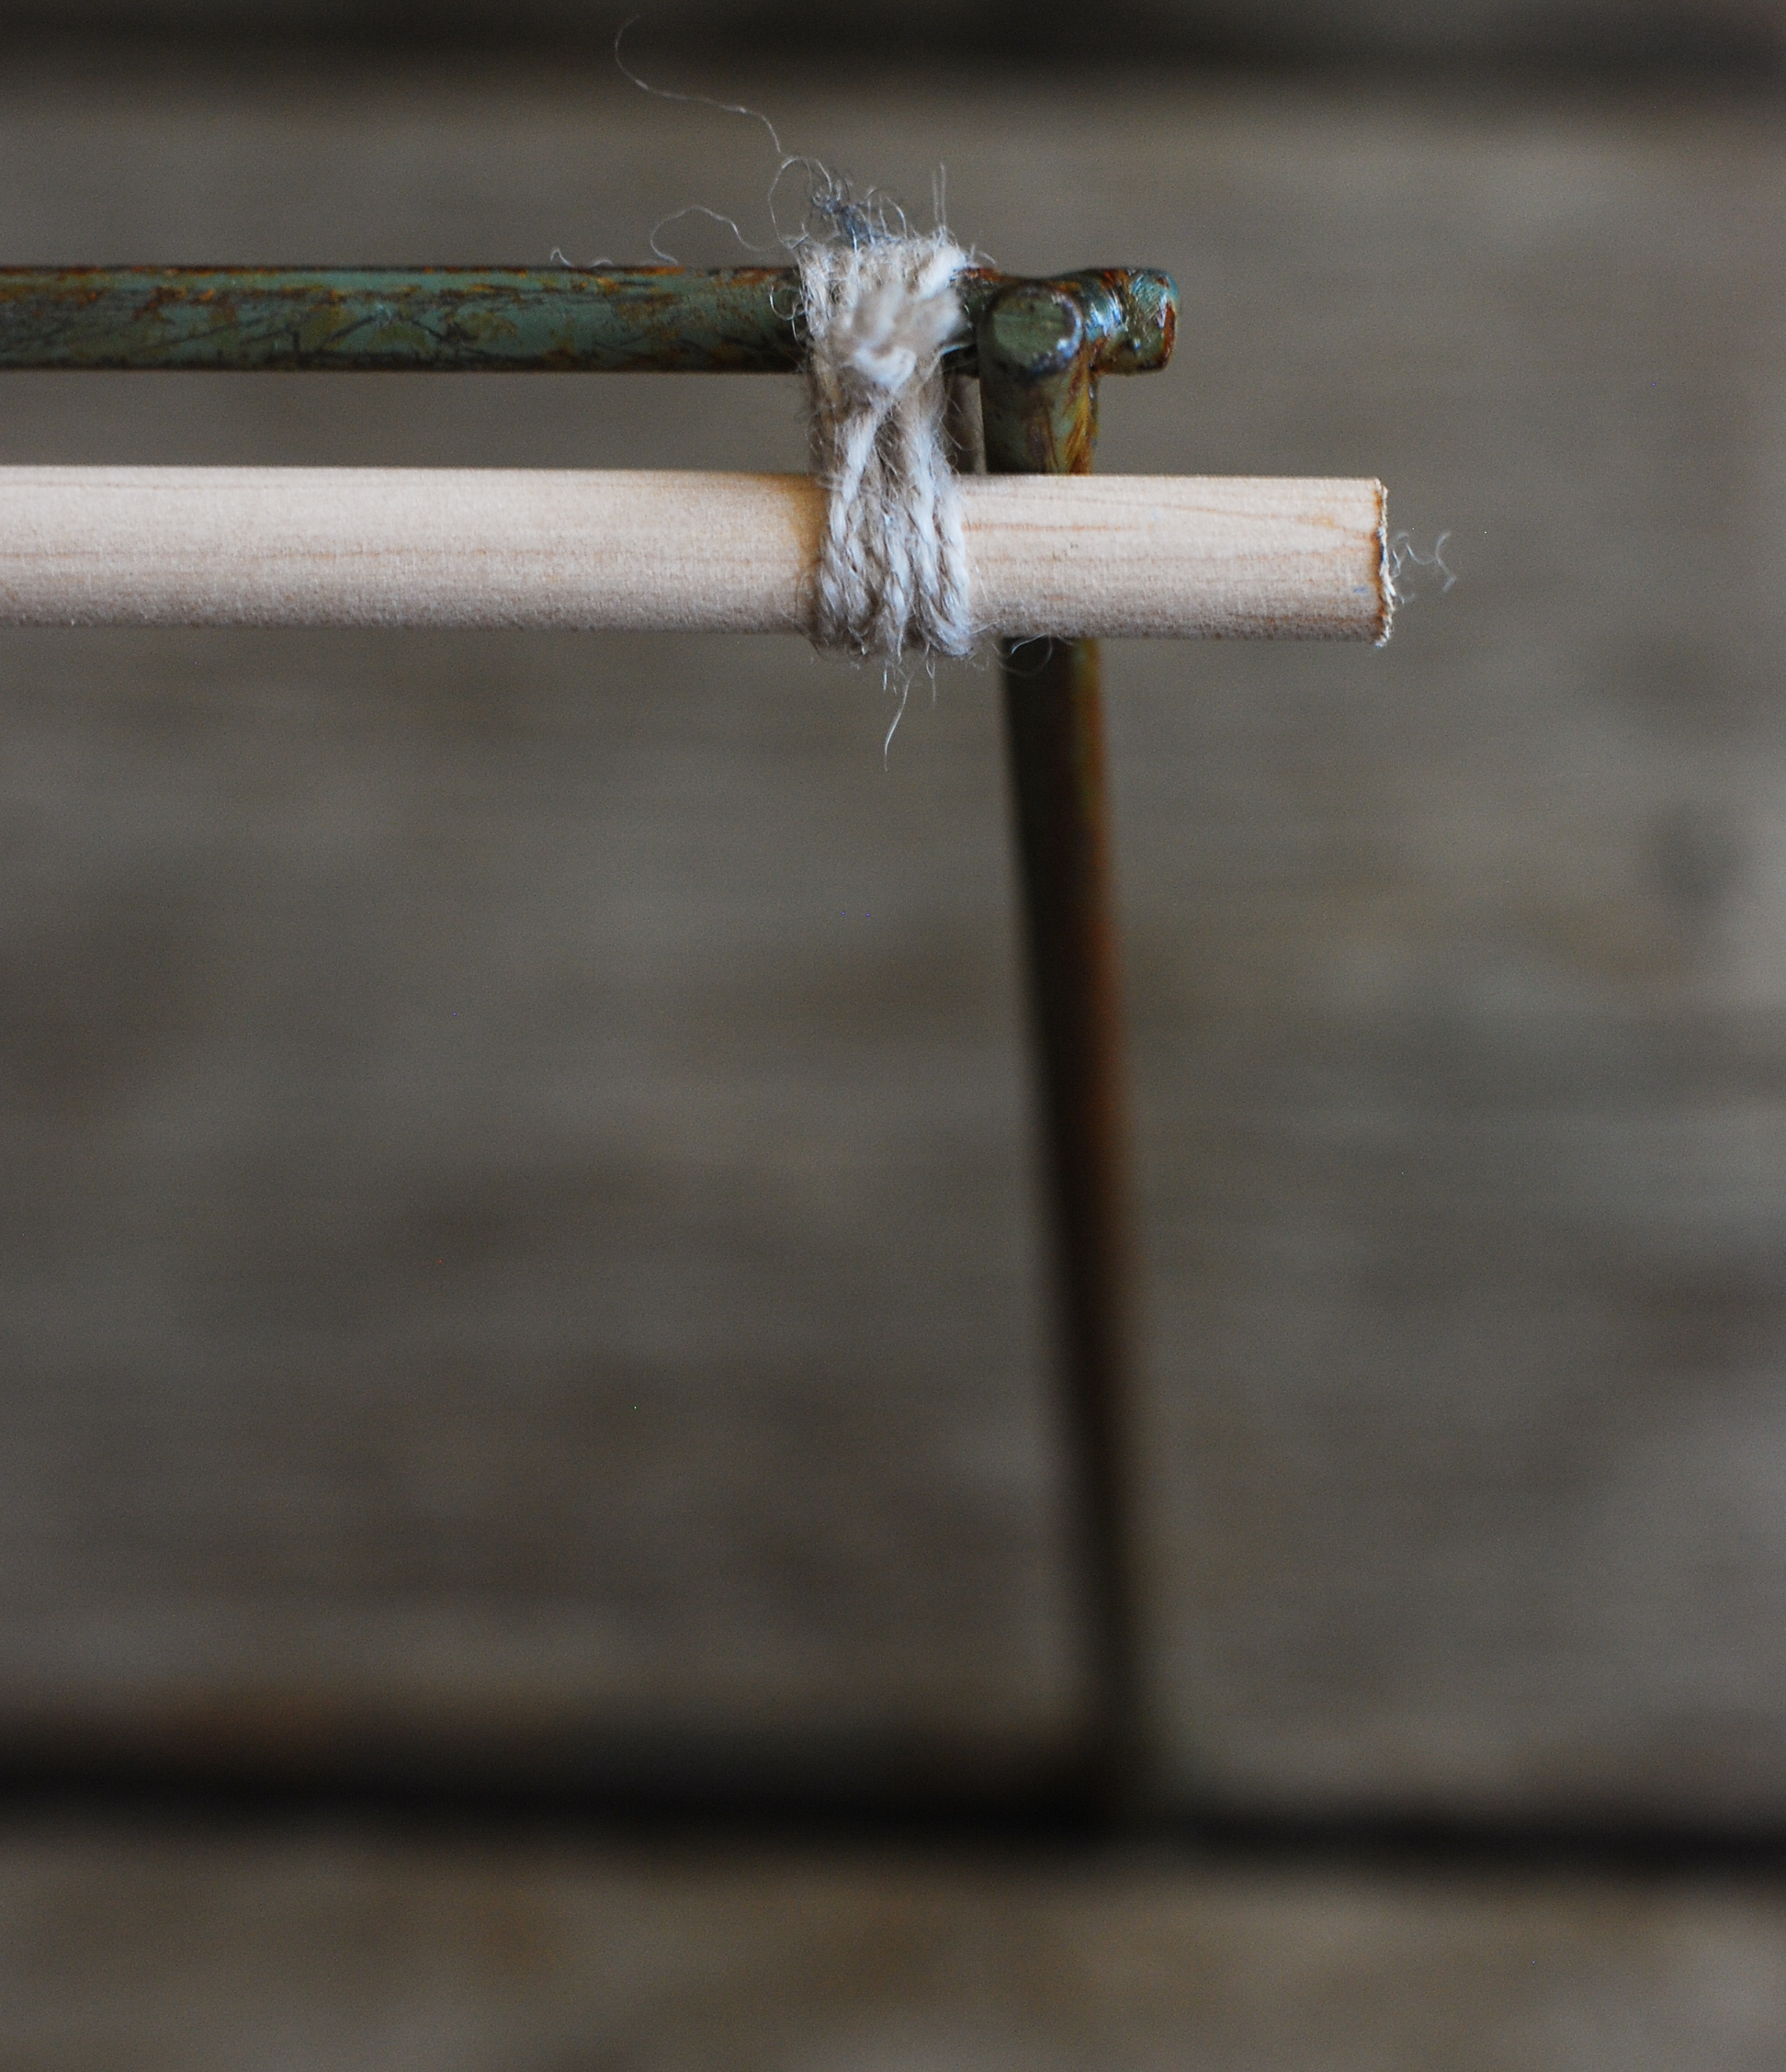 Step 1 - Attaching the Dowel